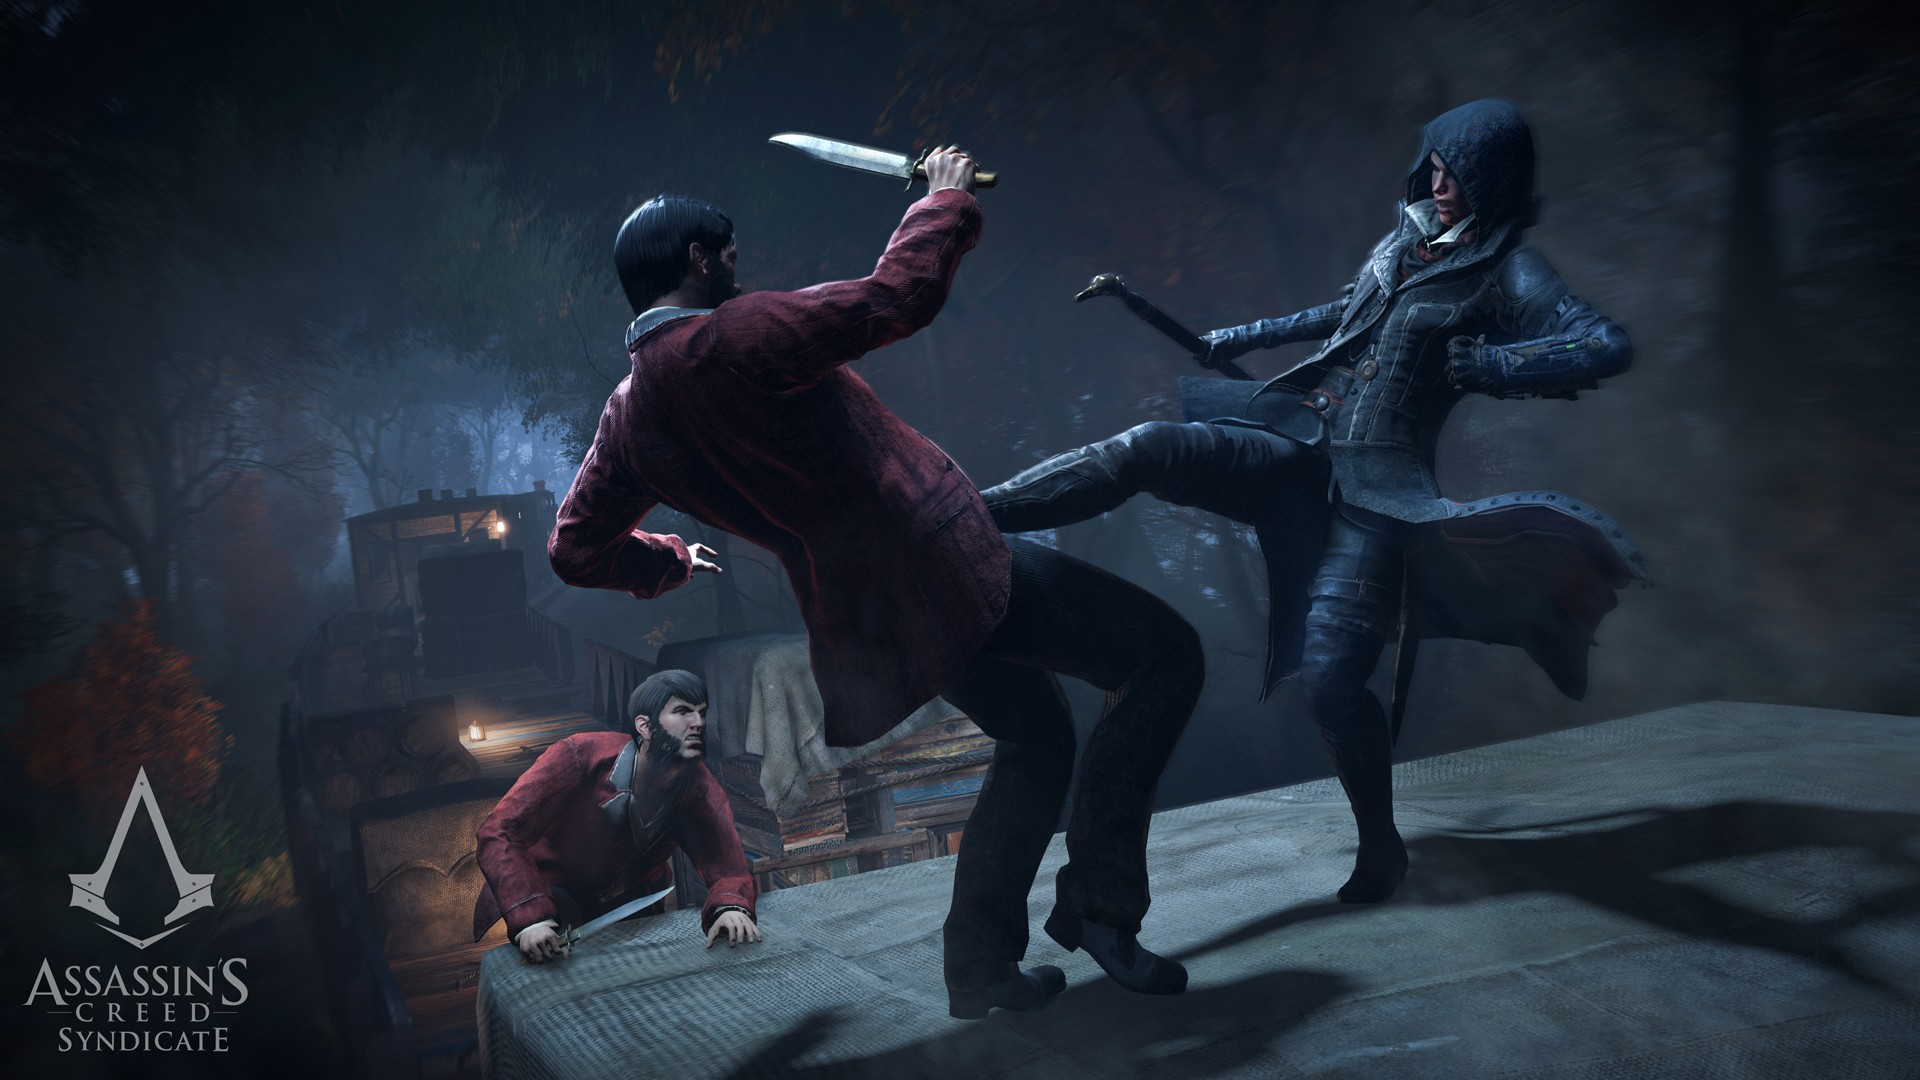 Assassins Creed Syndicate HD Wallpapers Backgrounds 1920x1080